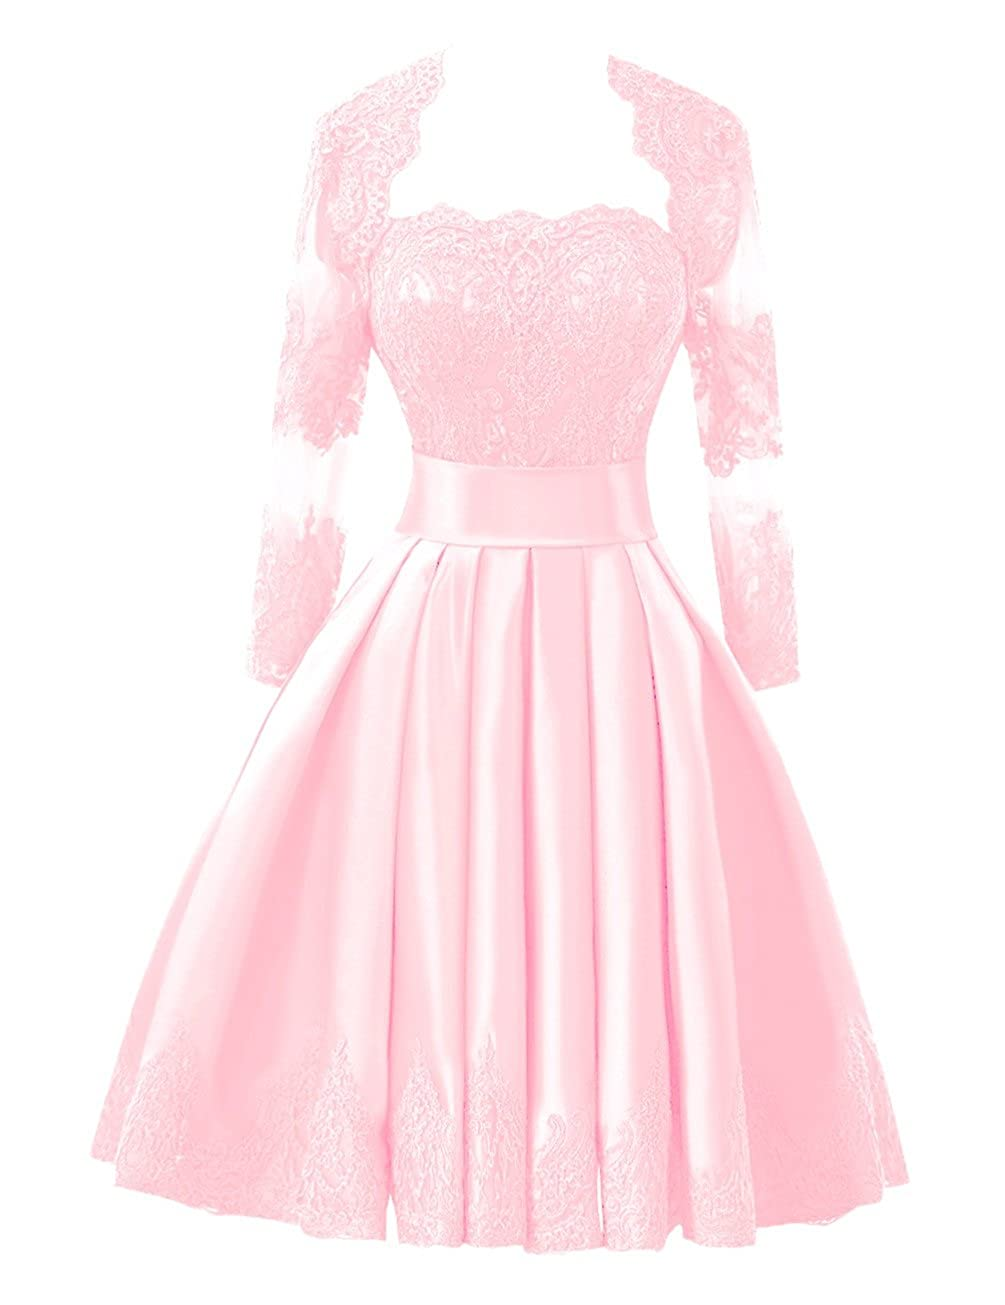 blueshing Pink Bess Bridal Women's Lace Short Prom Homecoming Dresses with Long Sleeve Jacket